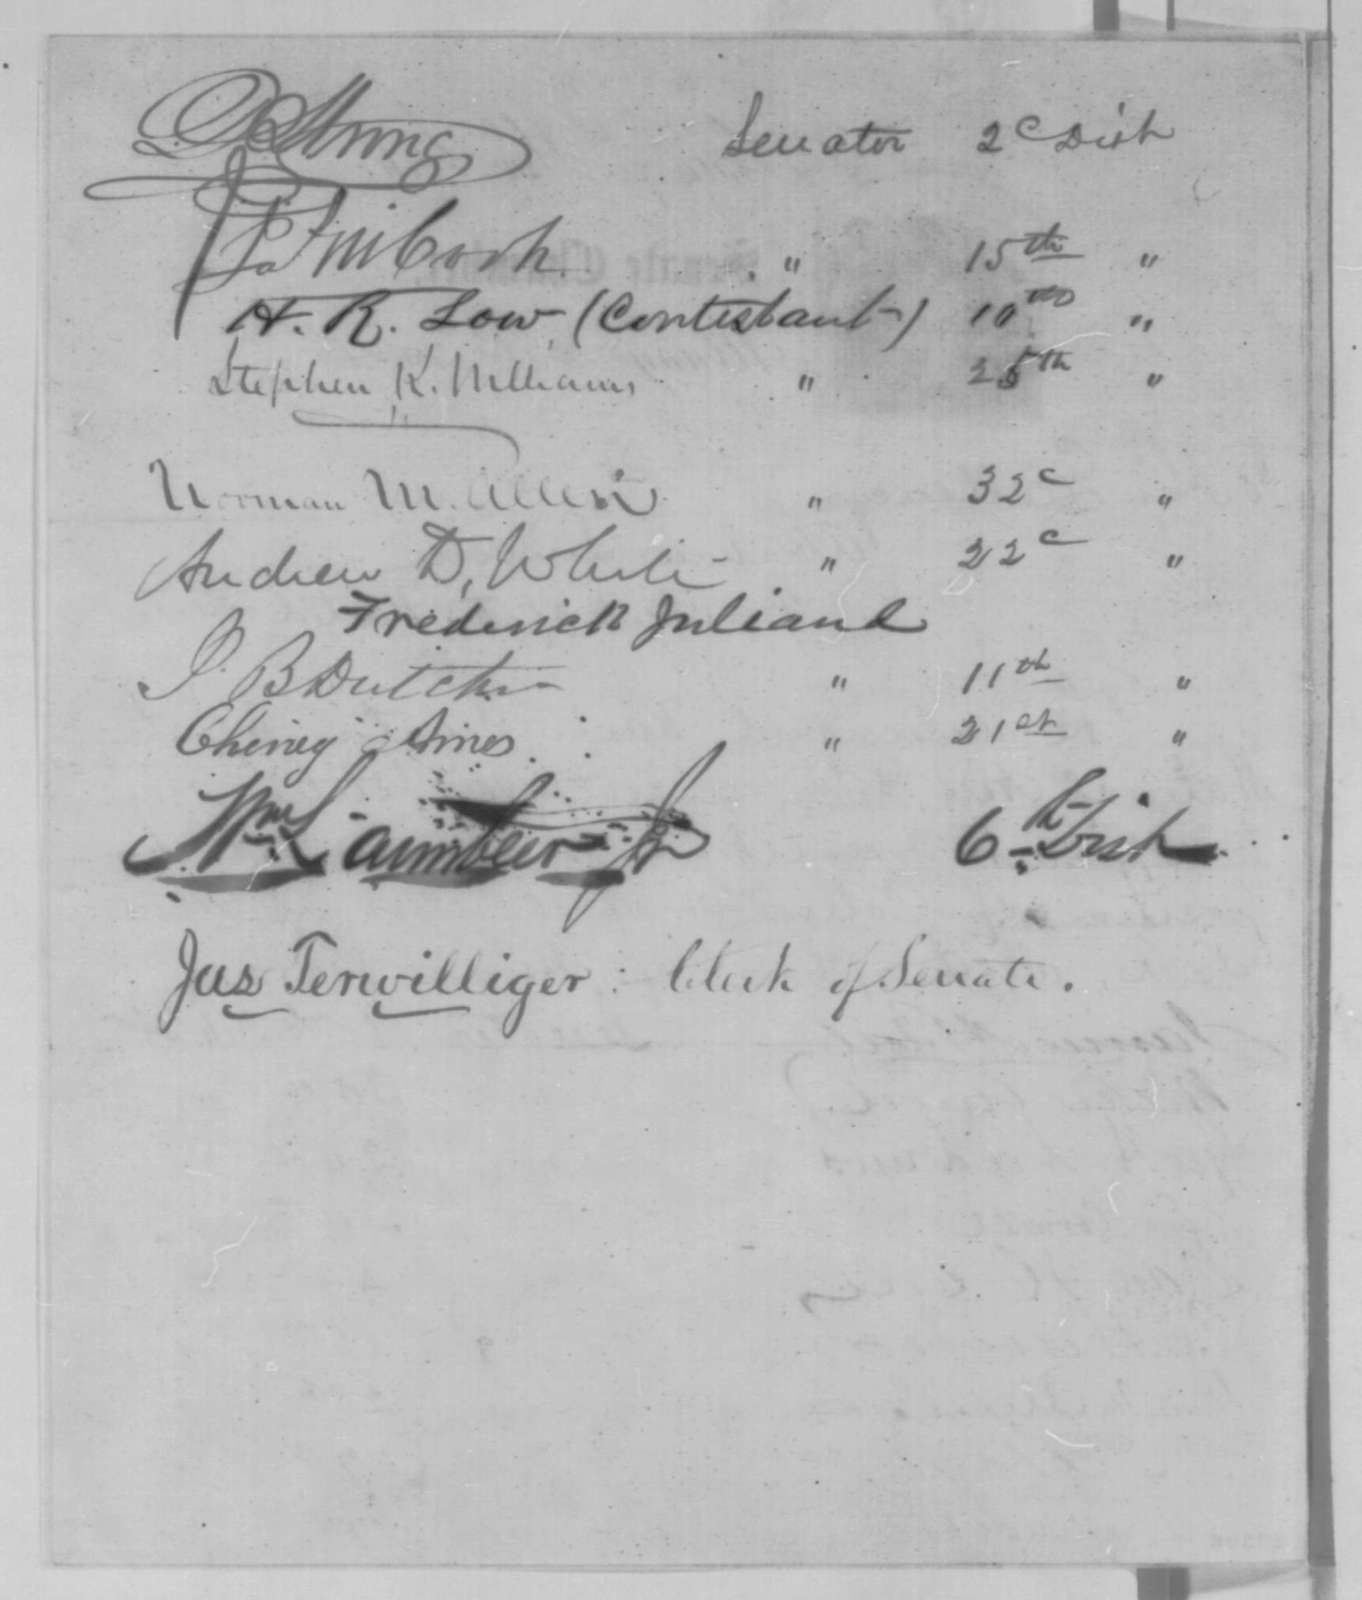 New York Union Senators to Abraham Lincoln, Tuesday, January 12, 1864  (Petition recommending appointment of Abram Wakeman to replace Hiram Barney)